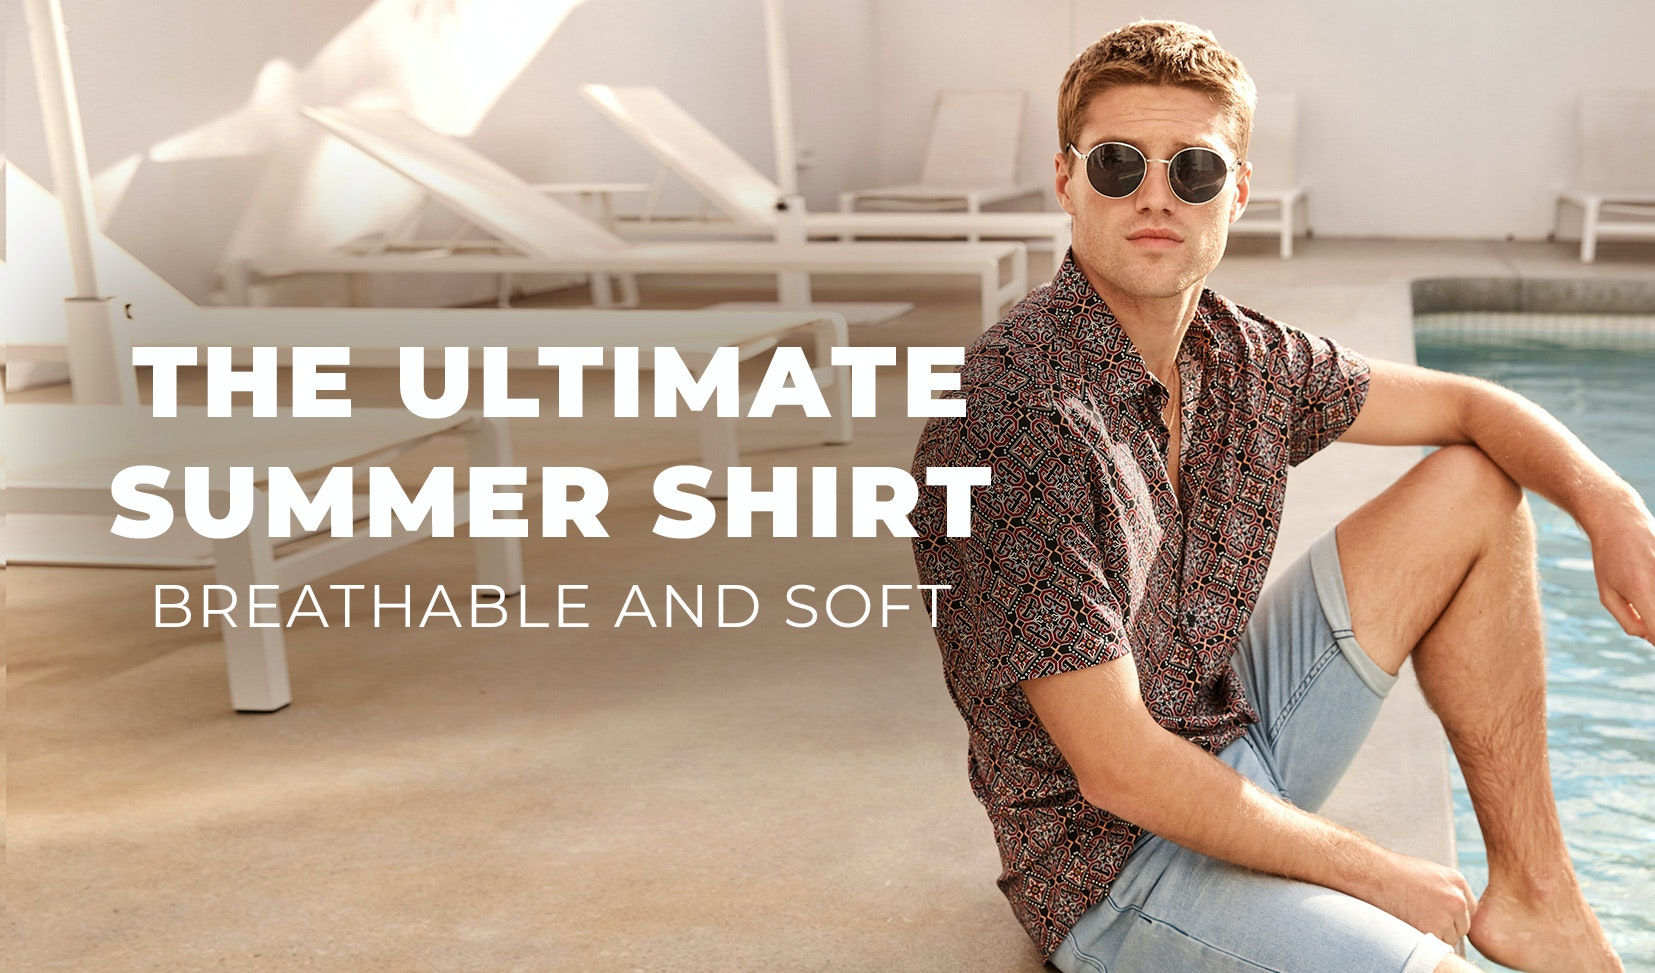 The Ultimate Summer Shirt